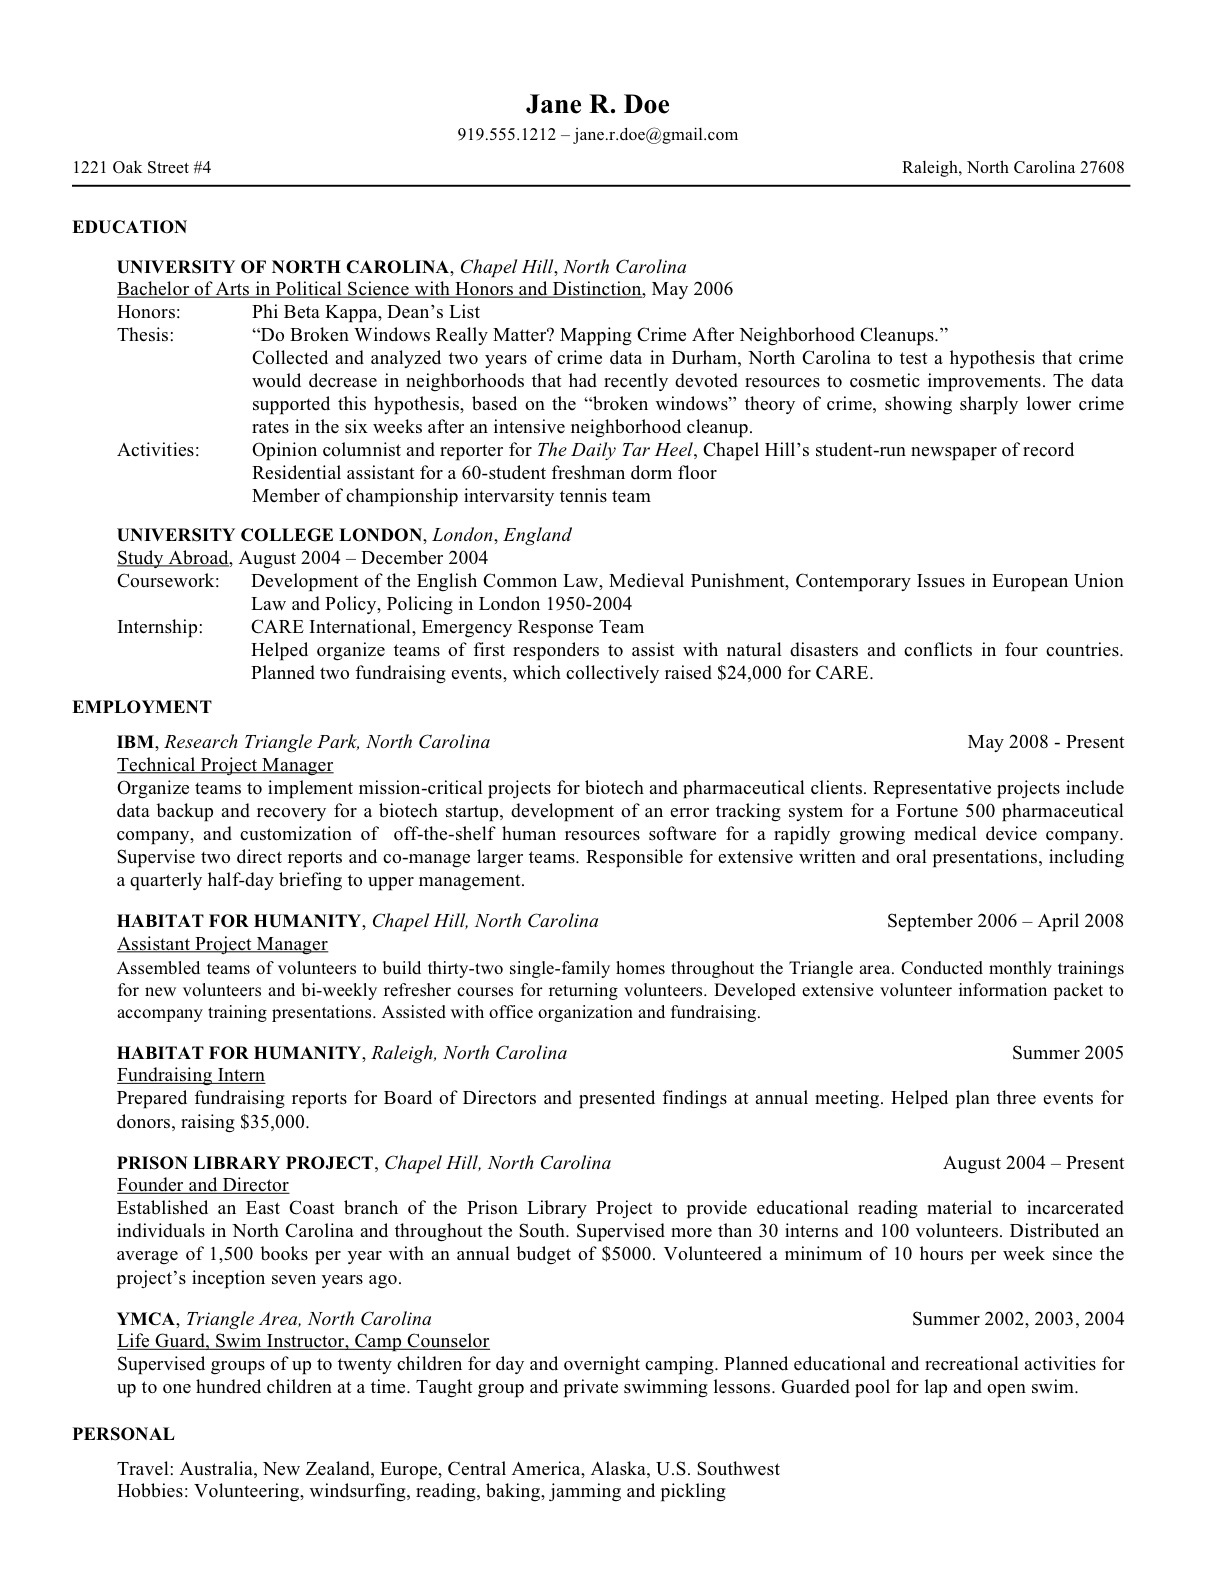 7 Law School Resume Templates: Prepping Your Resume for Law ...